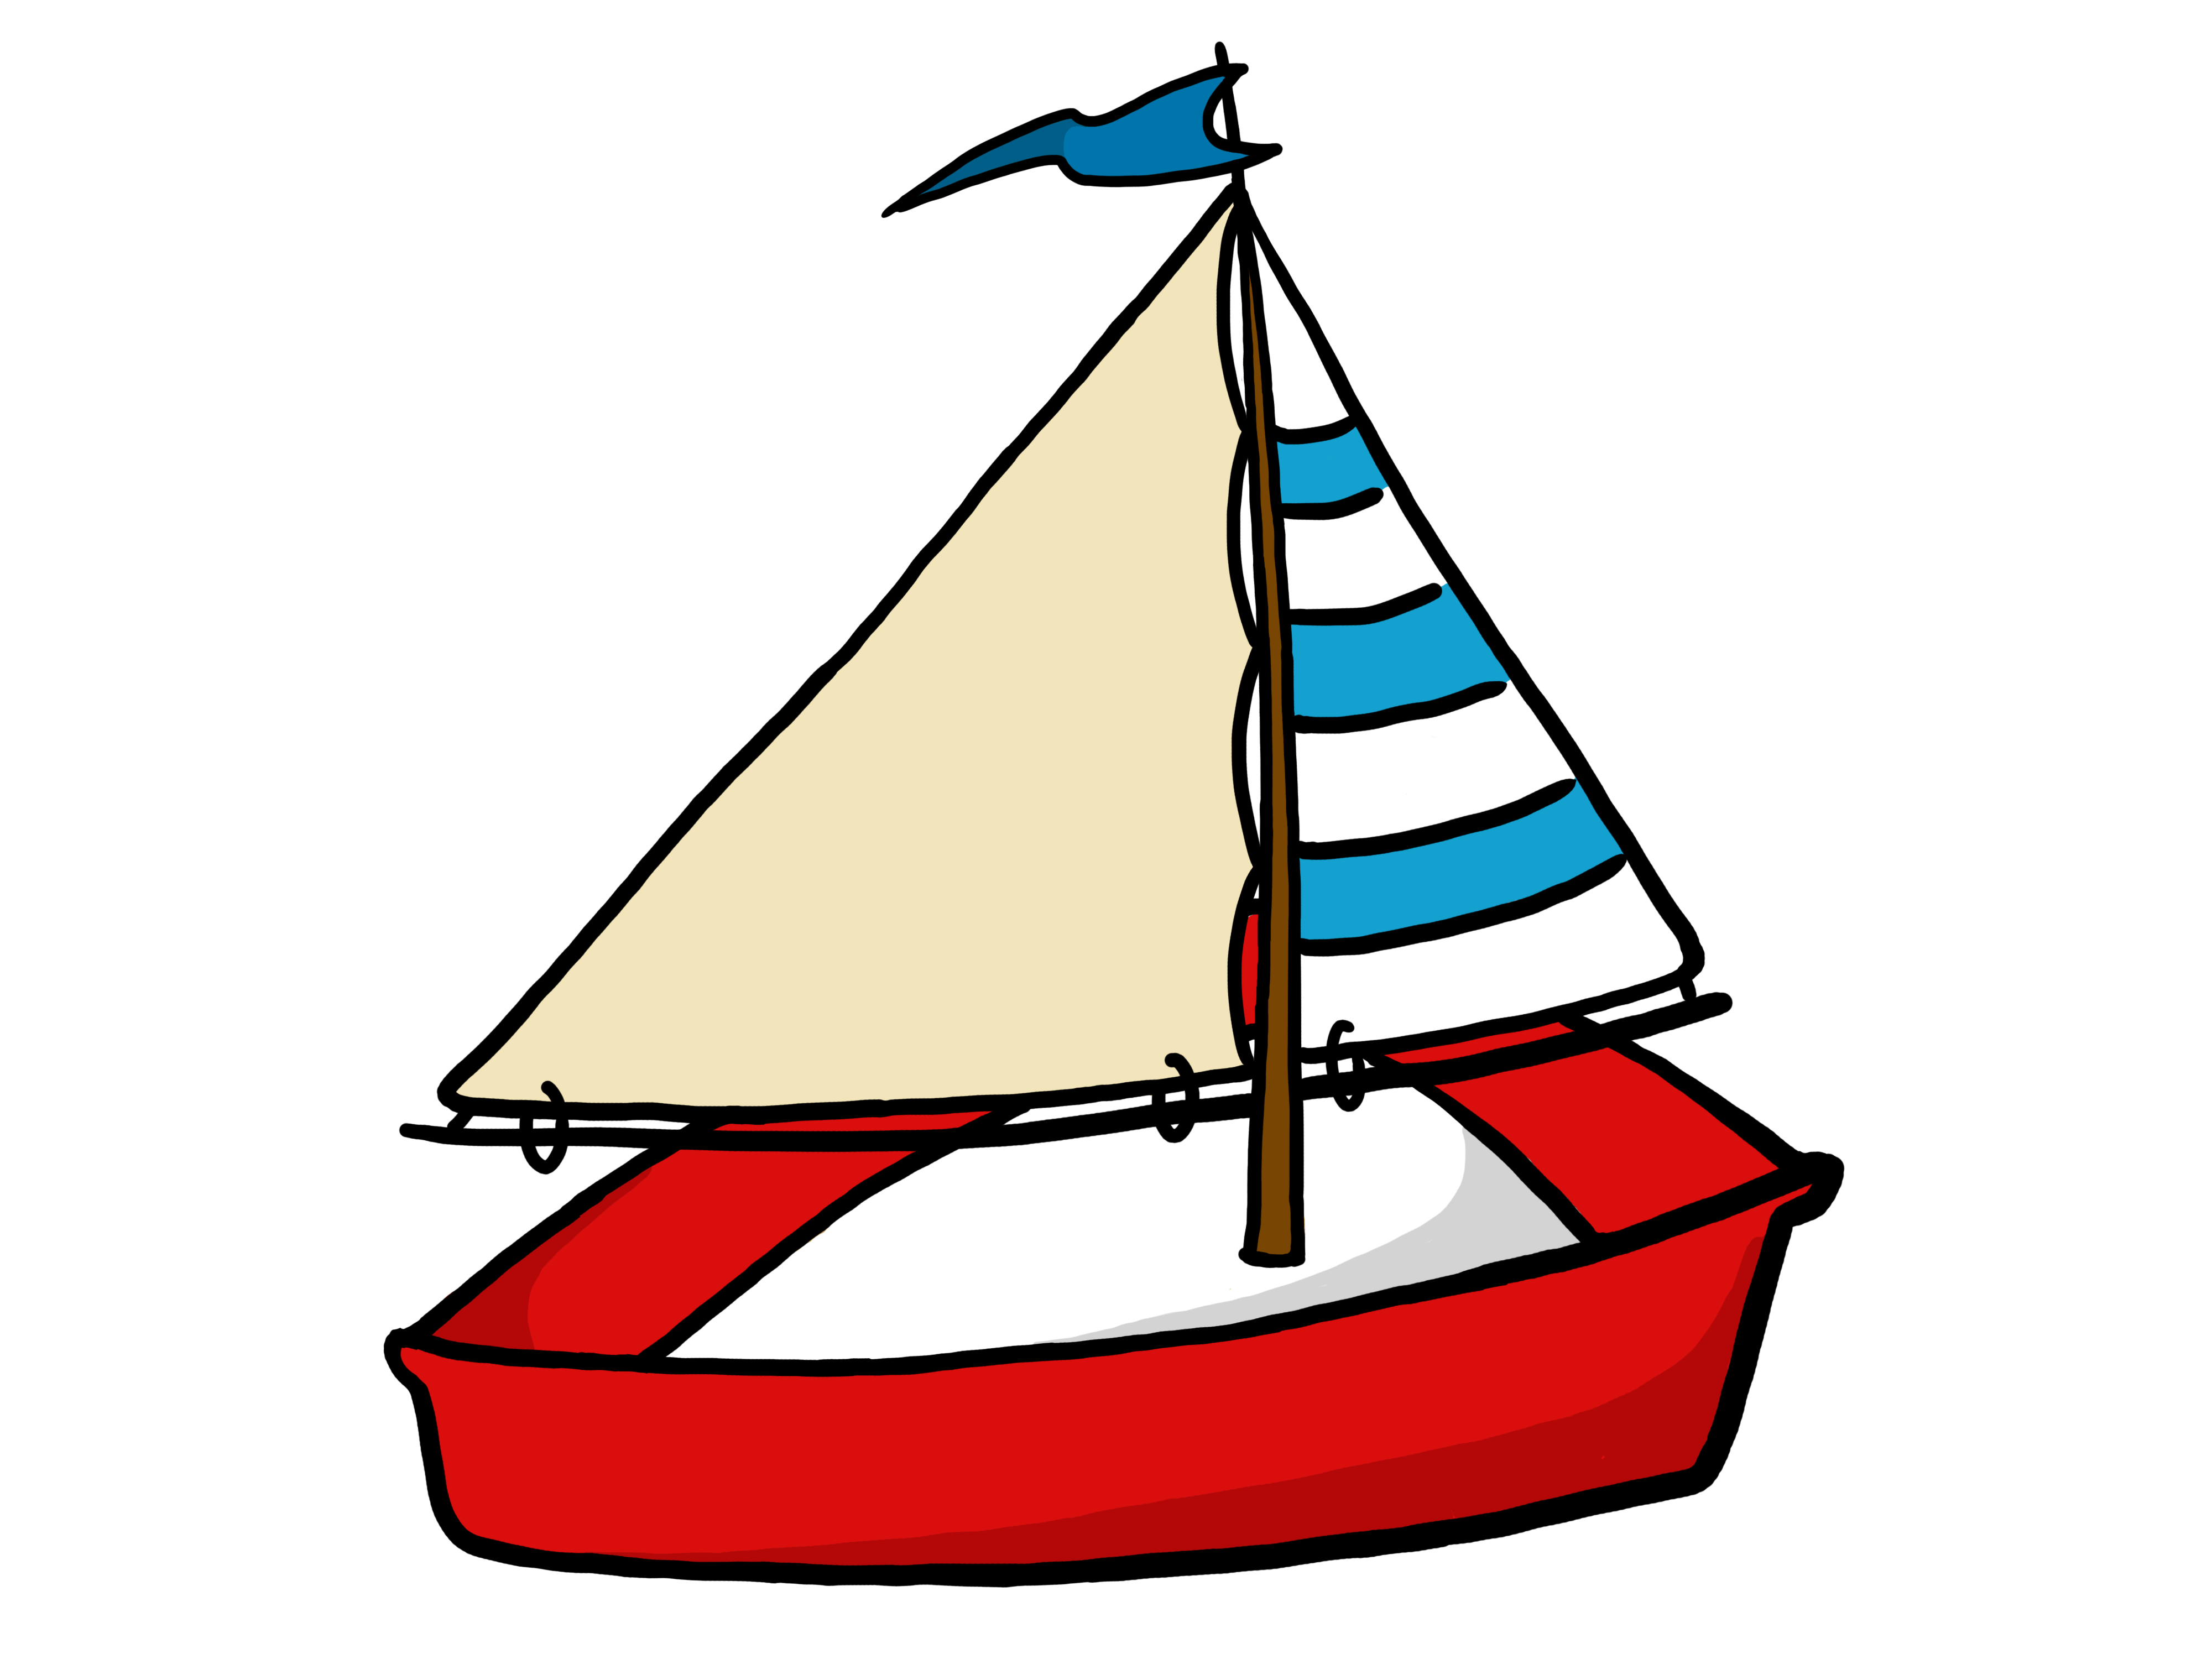 Yacht png cartoon. Svg free download